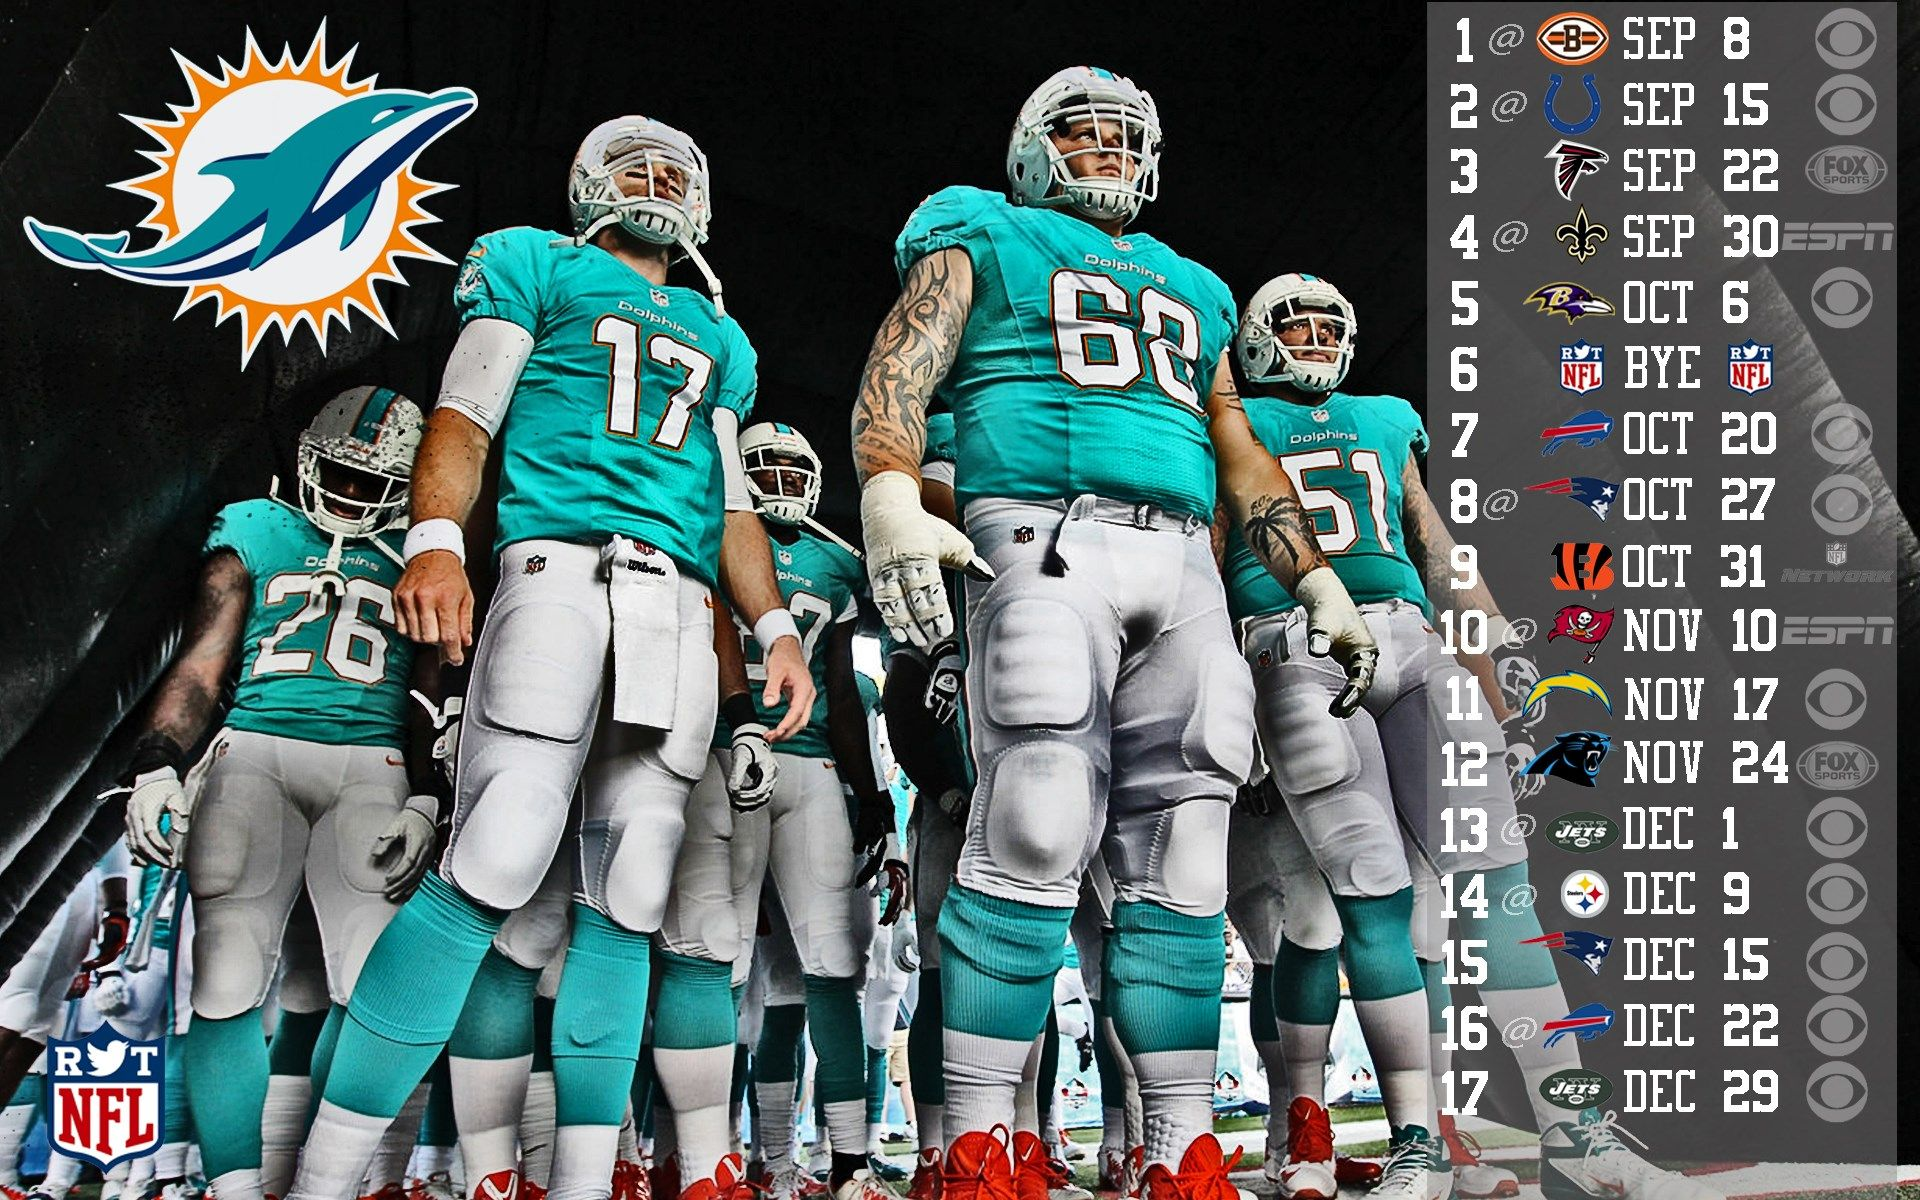 Dolphins Wallpapers Schedule Hd ScheduleMiami DolphinsLive